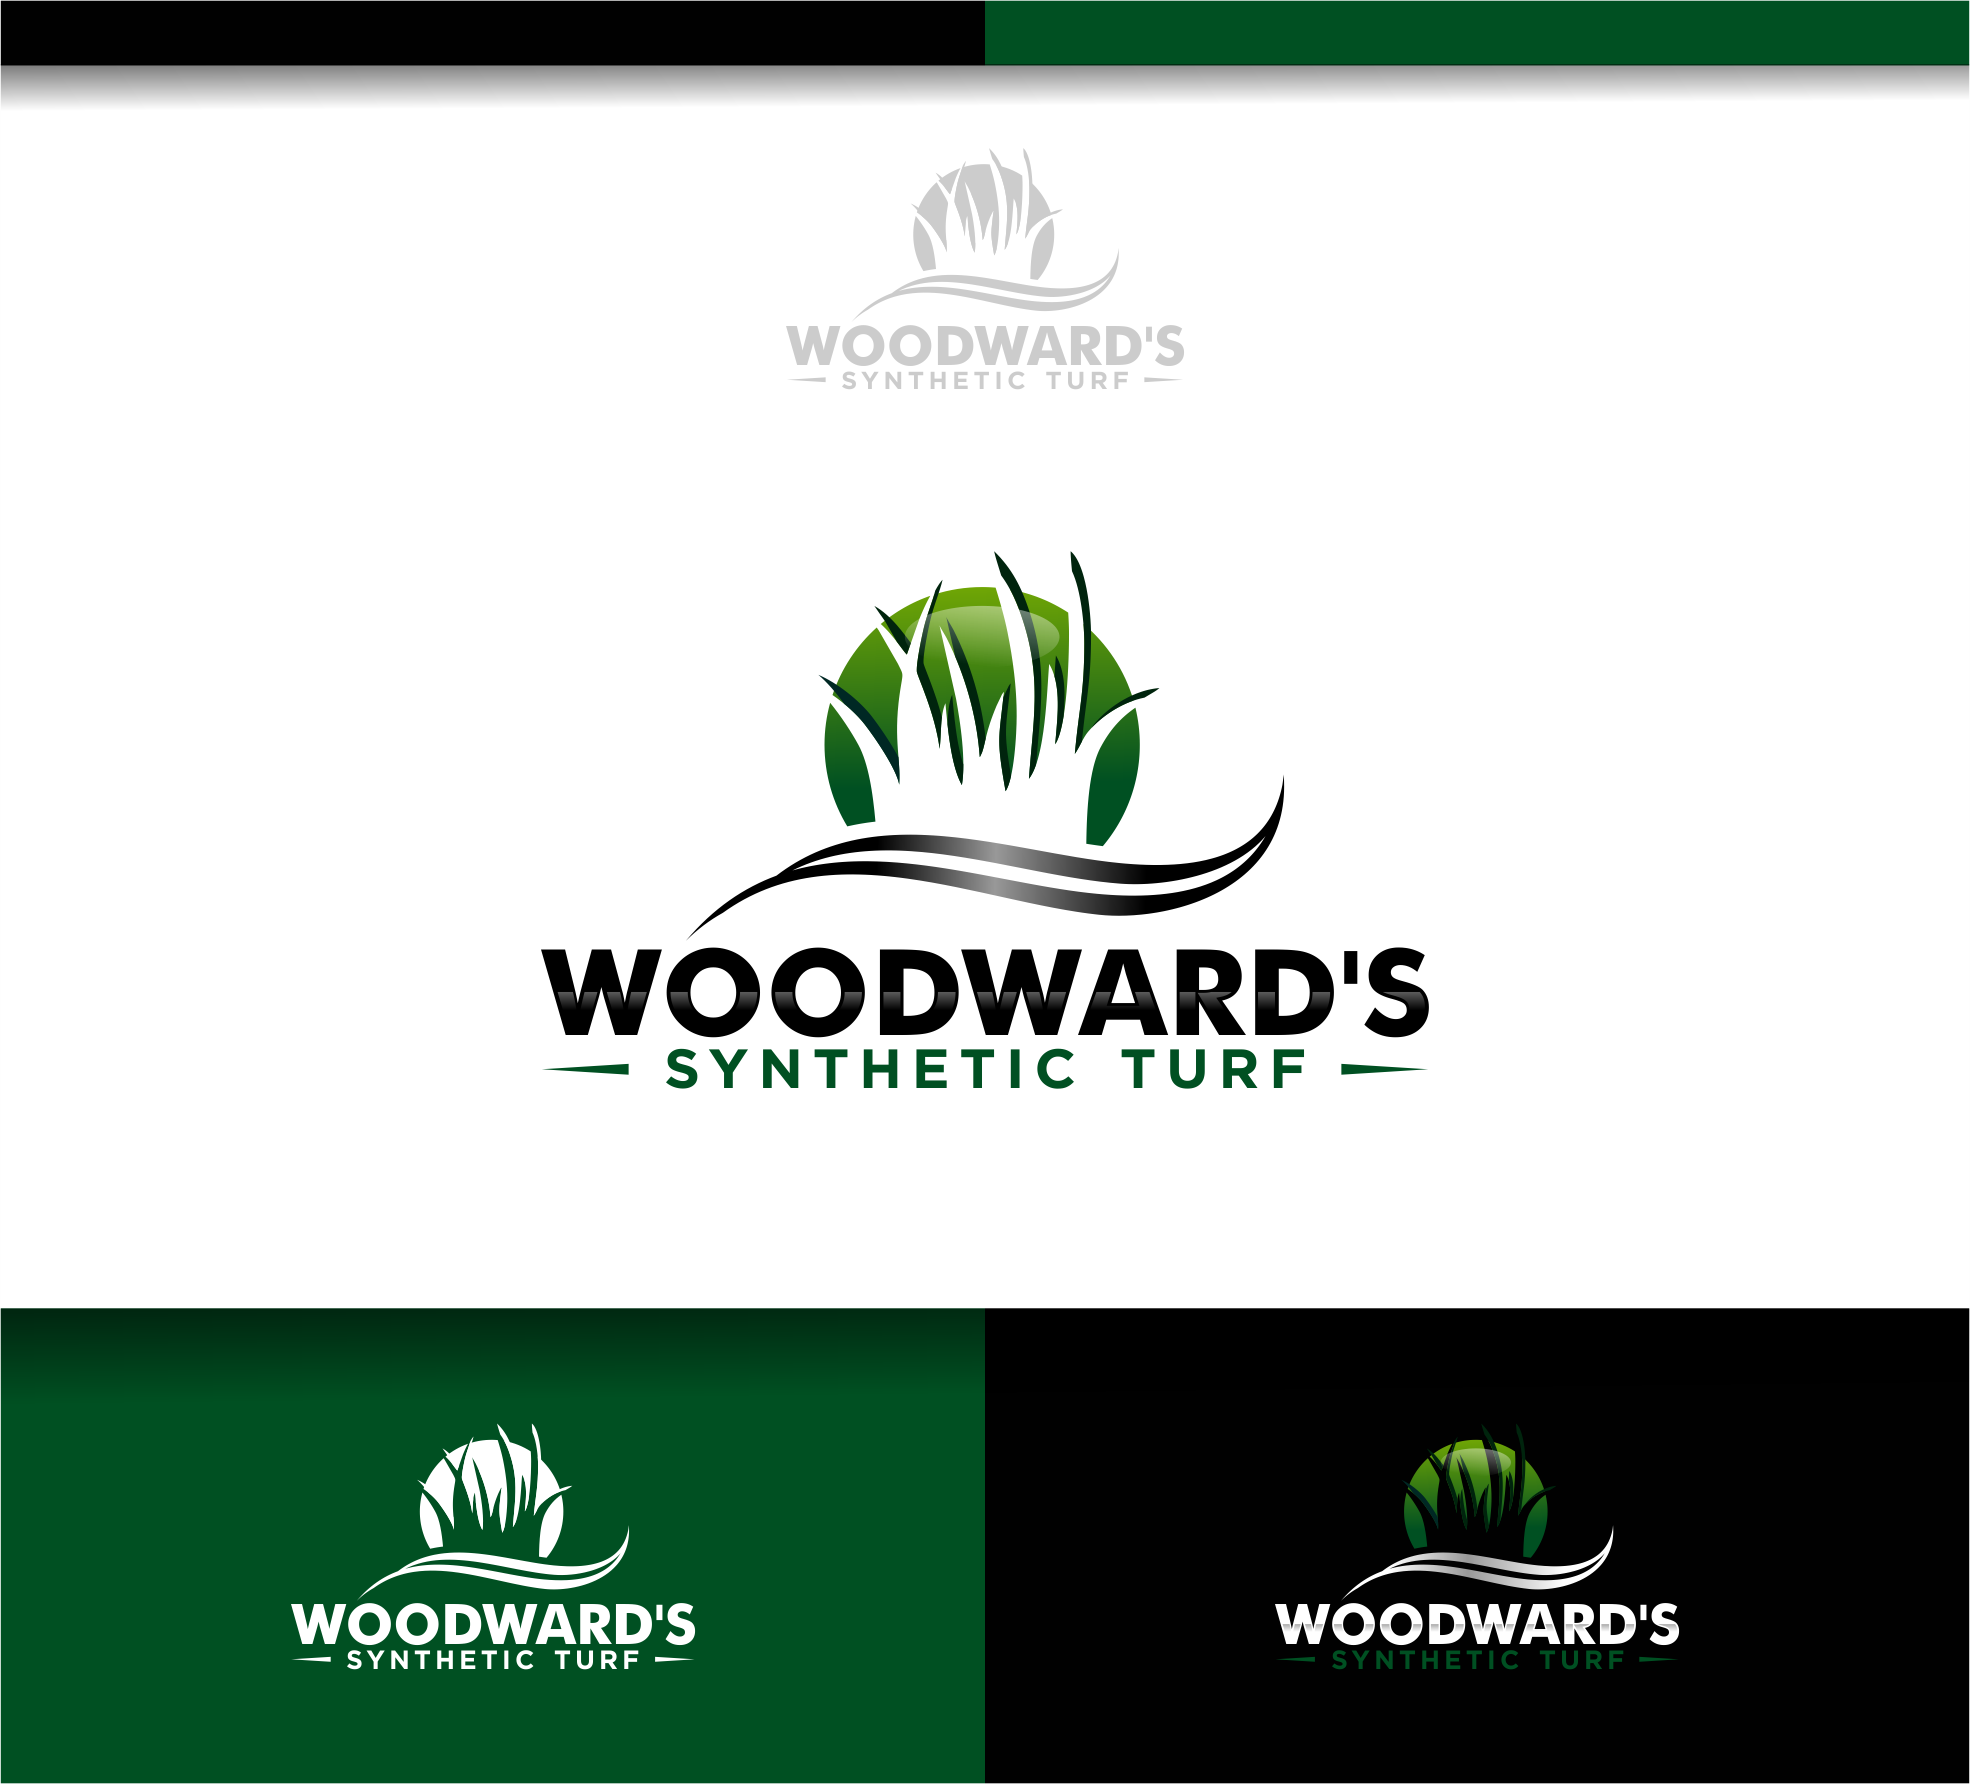 Logo Design by Raymond Garcia - Entry No. 88 in the Logo Design Contest Artistic Logo Design for Woodward's Synthetic Turf.